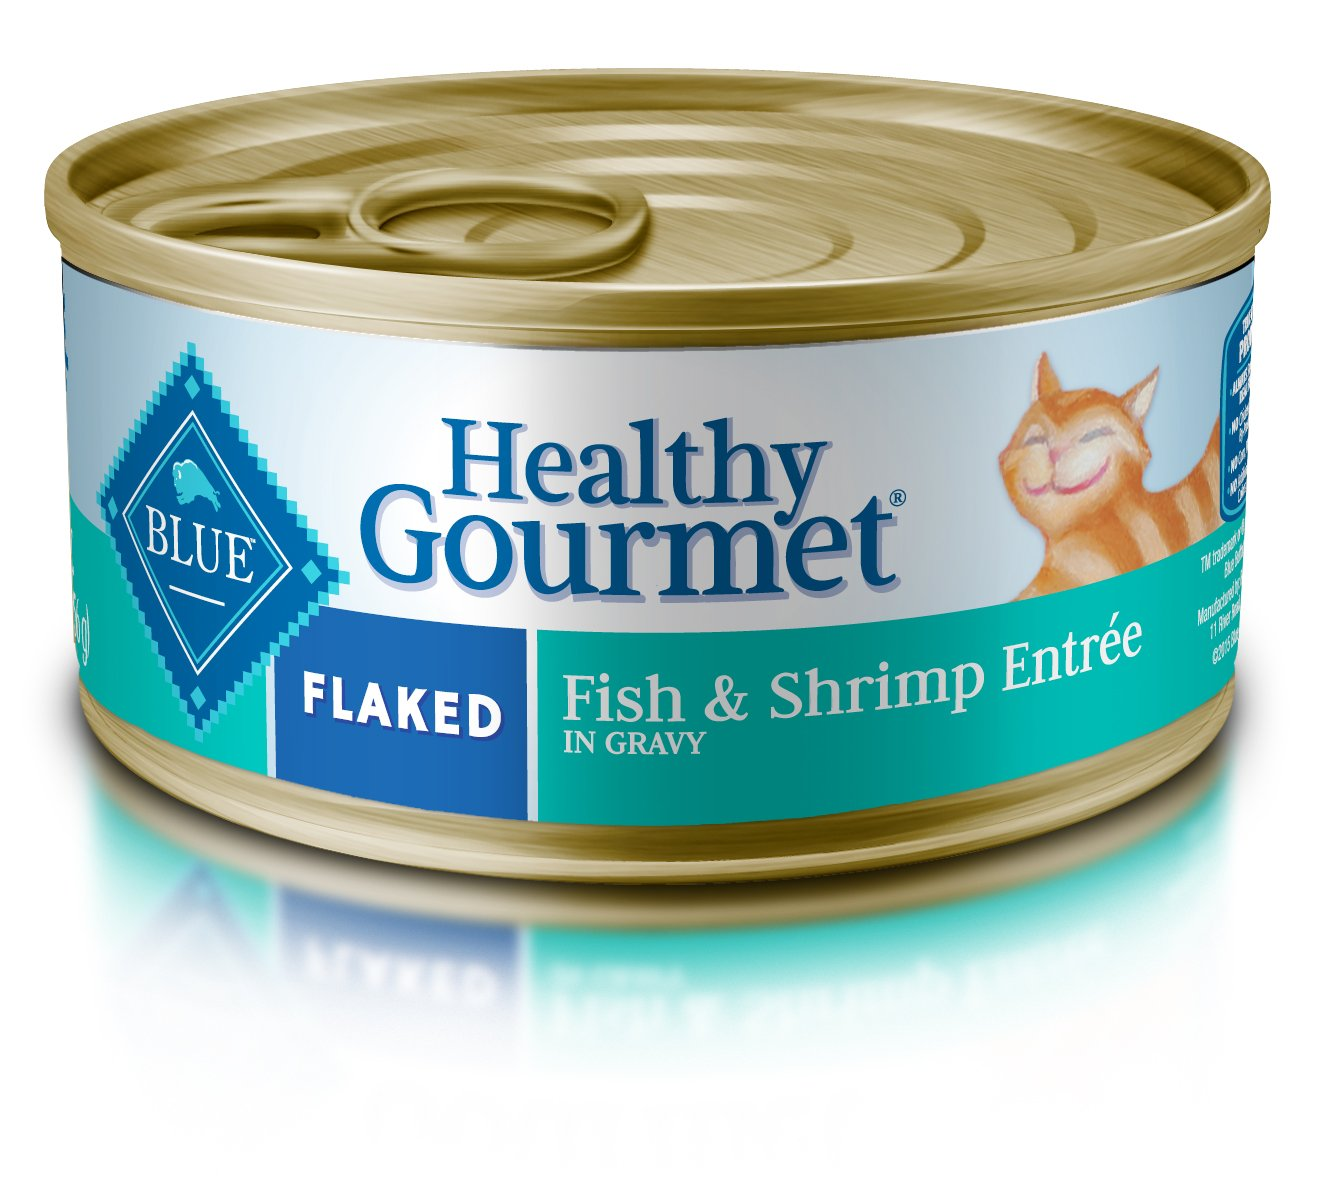 Blue Buffalo Healthy Gourmet Natural Adult Flaked Wet Cat Food, Fish & Shrimp 5.5-oz cans (Pack of 24) by Blue Buffalo